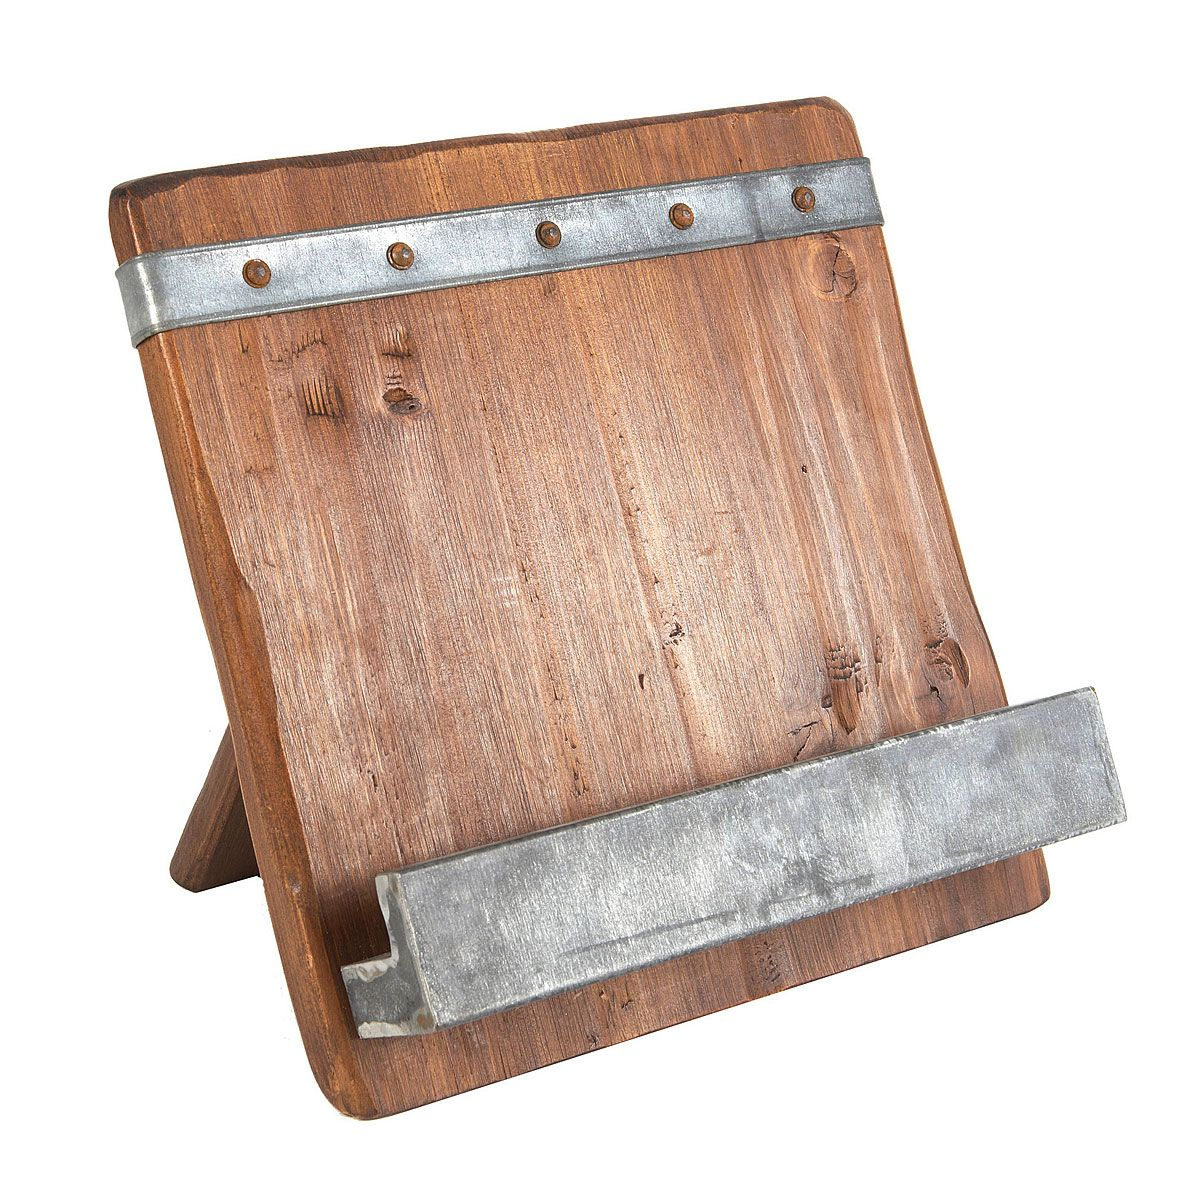 Reclaimed Wood Cookbook Stand Holder Uncommongoods